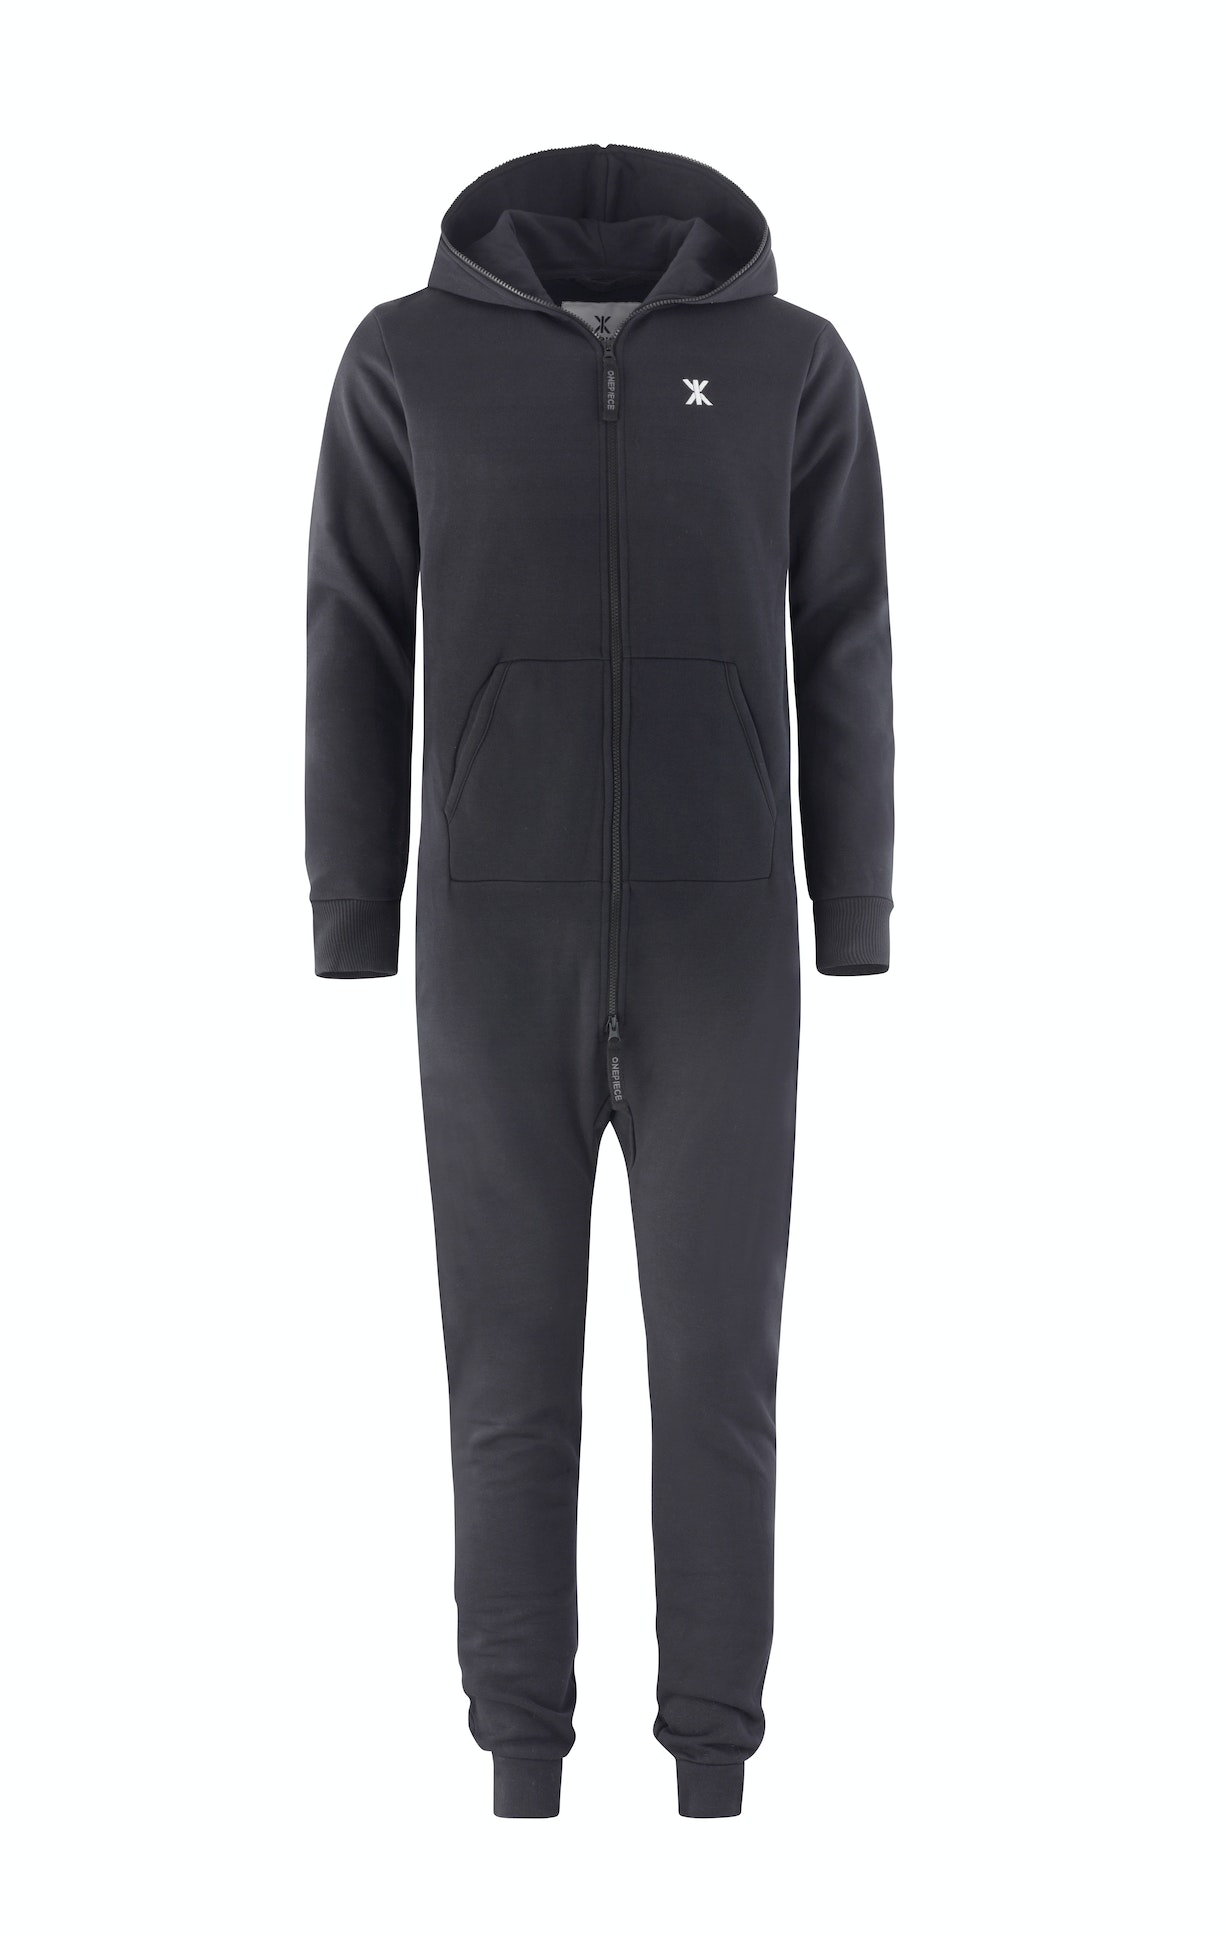 Original Onesie 2.0 Black With Black Zipper An upgrade of our signature jumpsuit and global best seller, the Original 2.0 in Black features slimmer fitting legs, pockets with hidden seams and an extra soft lining.